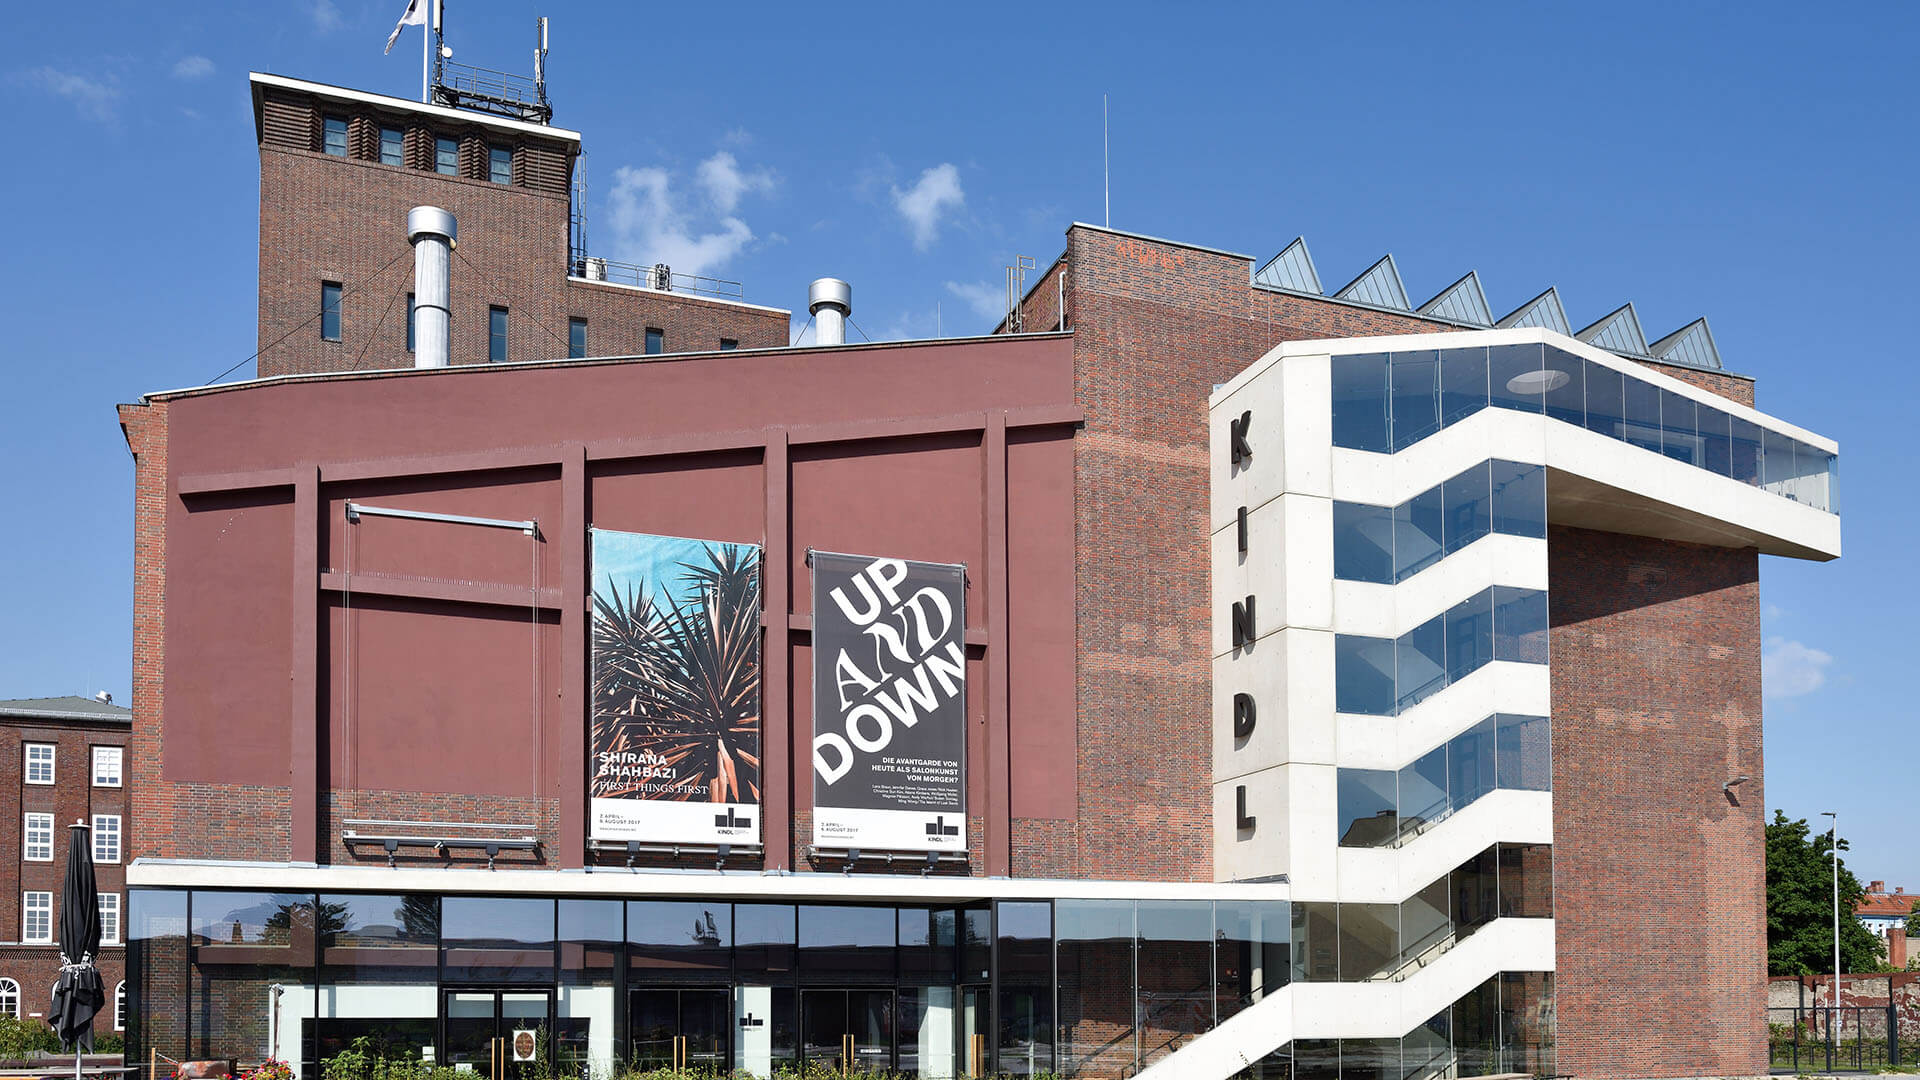 Kindl Brewery – Centre for Contemporary Art